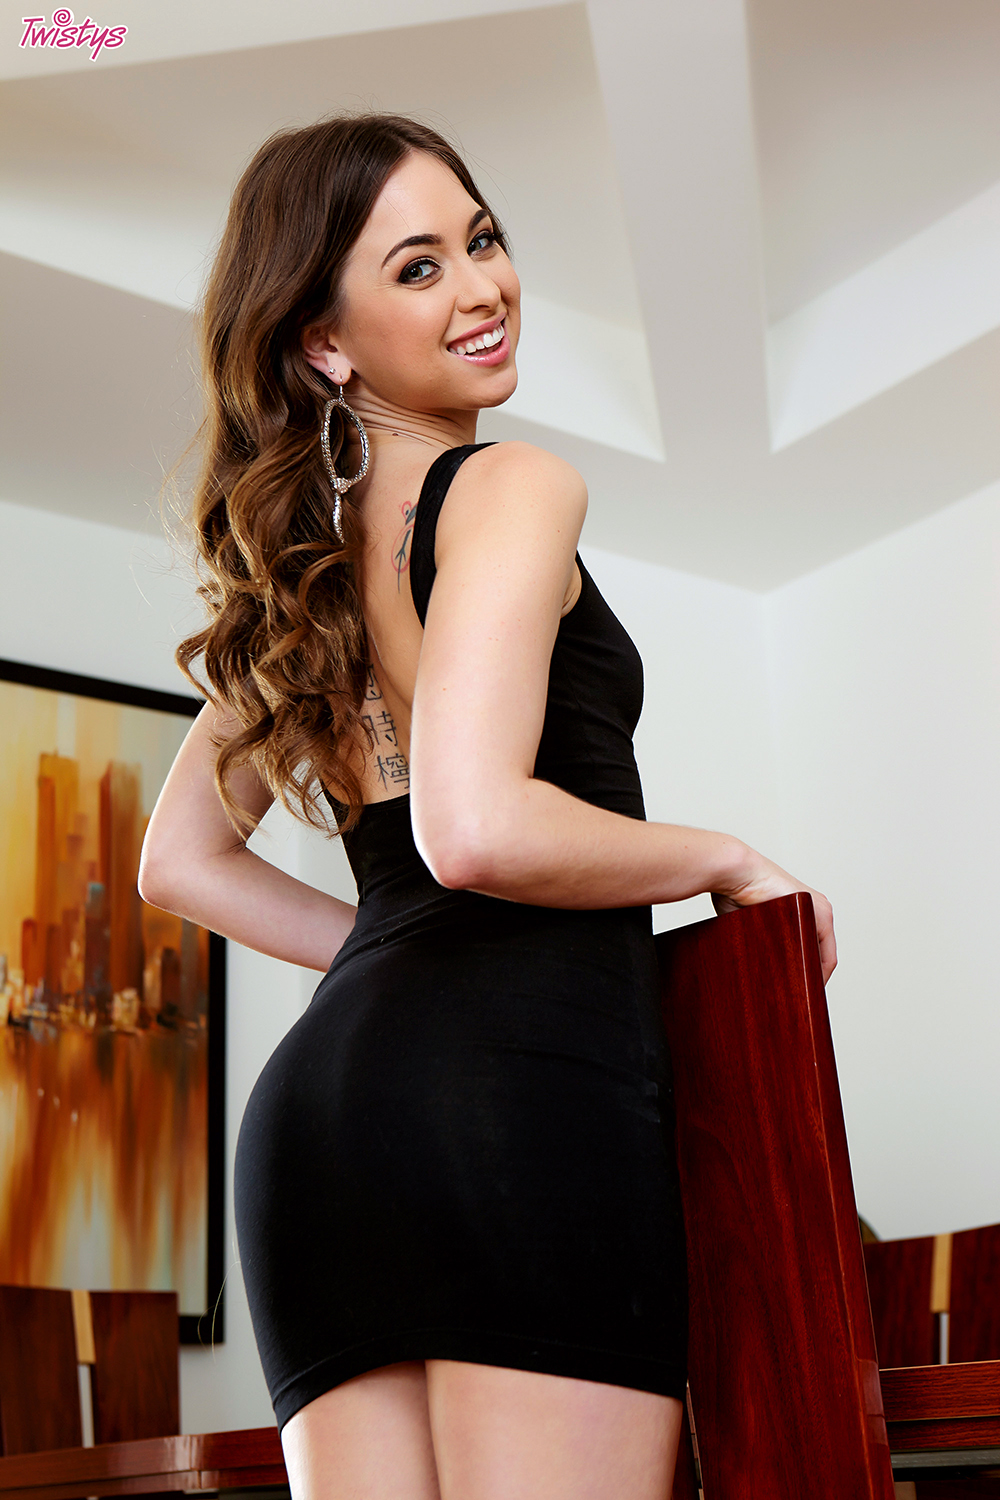 Riley Reid Twistys The Little Black Dress 1